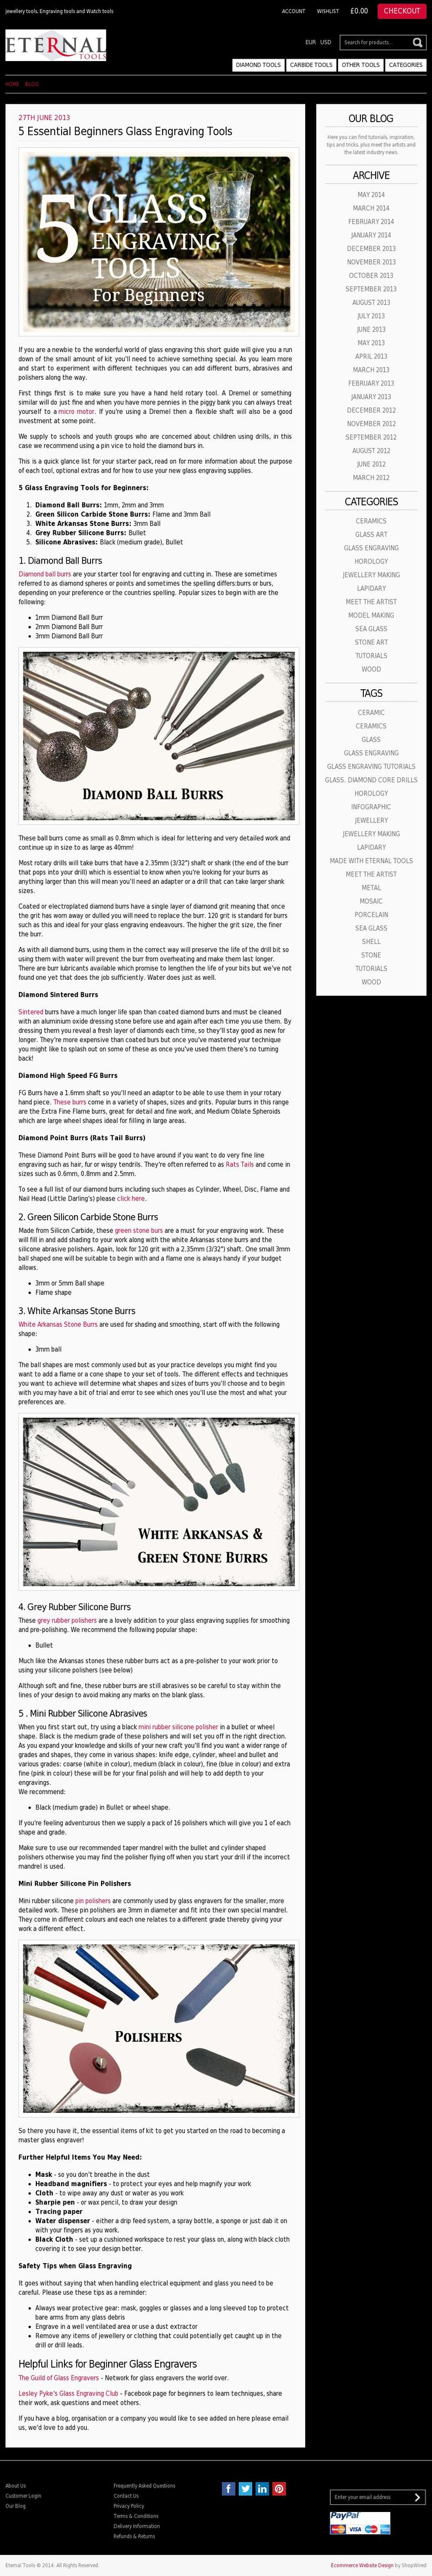 *** 5 GLASS ENGRAVING TOOLS FOR BEGINNERS*** This article tells you the essential bits of kit you'll need to start you off glass engraving using the drill technique. Find some glass, pick up your Dremel drill and order these few inexpensive bits of kit and you'll be on your way to being part of a wonderful craft. Diamond Burs, Polishers, White Arkansas and green stones....